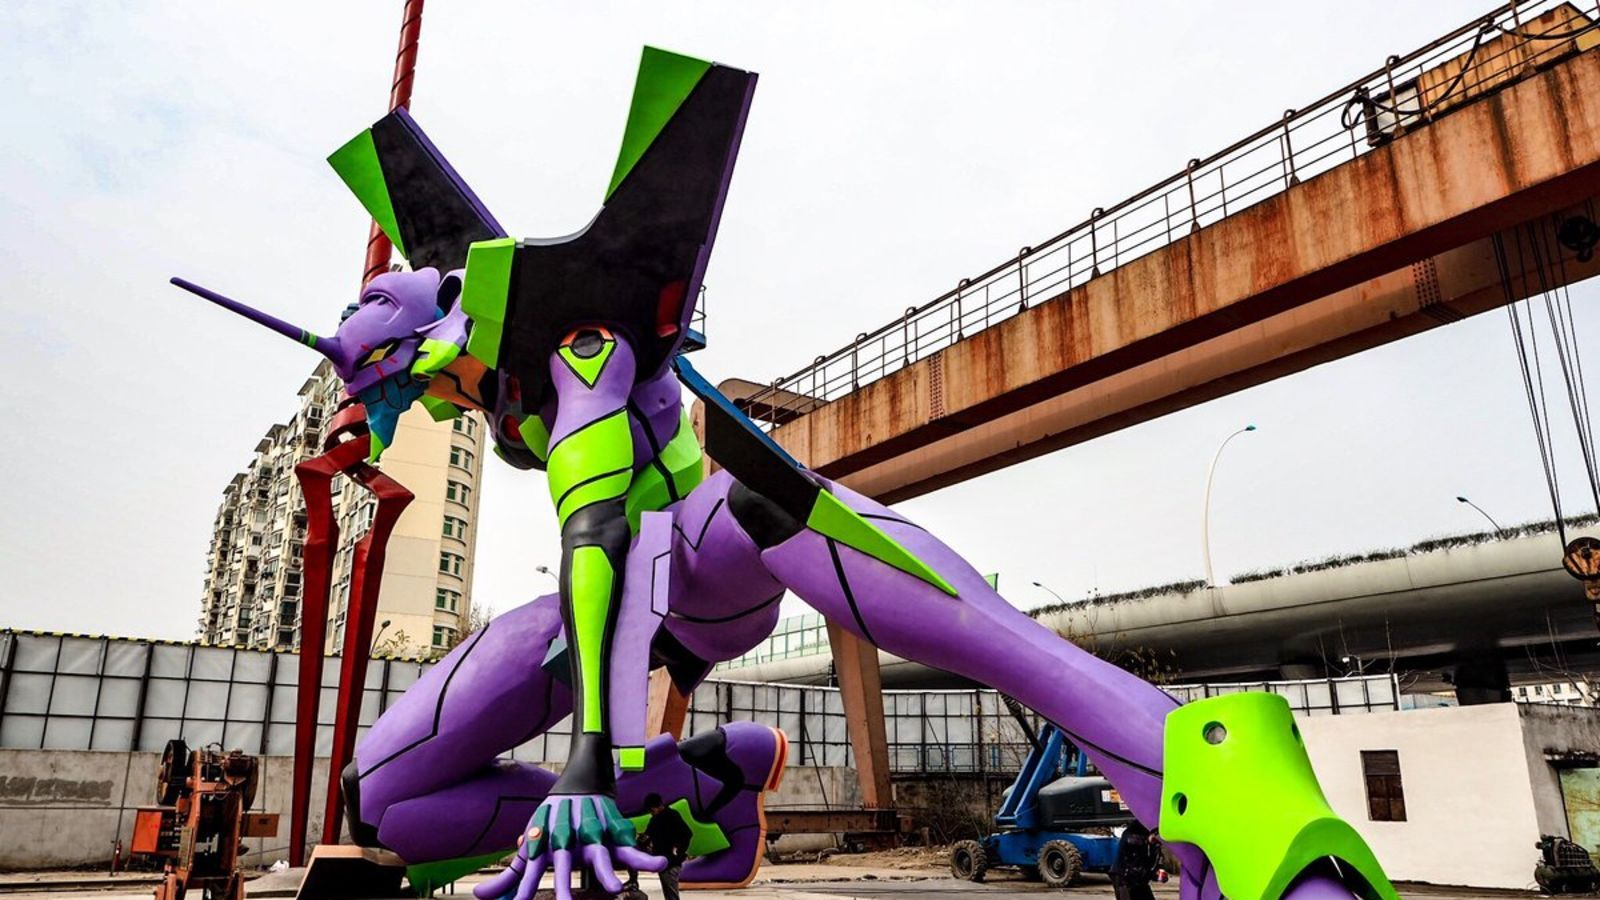 The Tallest Evangelion Statue In The World (With images